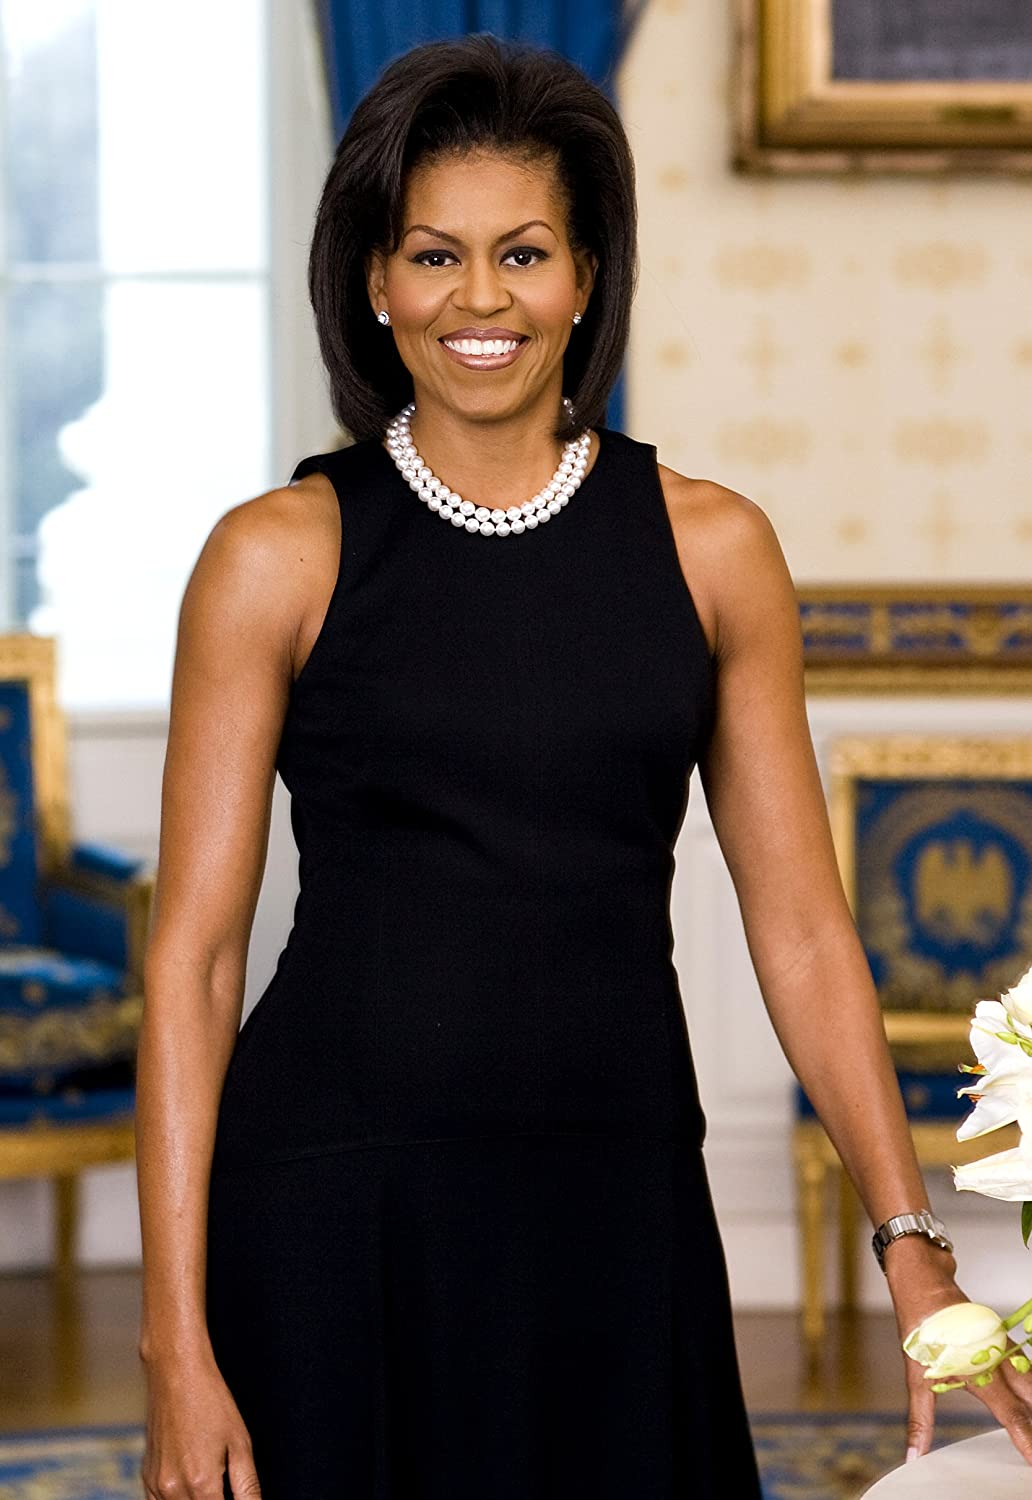 Amazon.com: Michelle Obama Official Portrait First Lady Photo ...